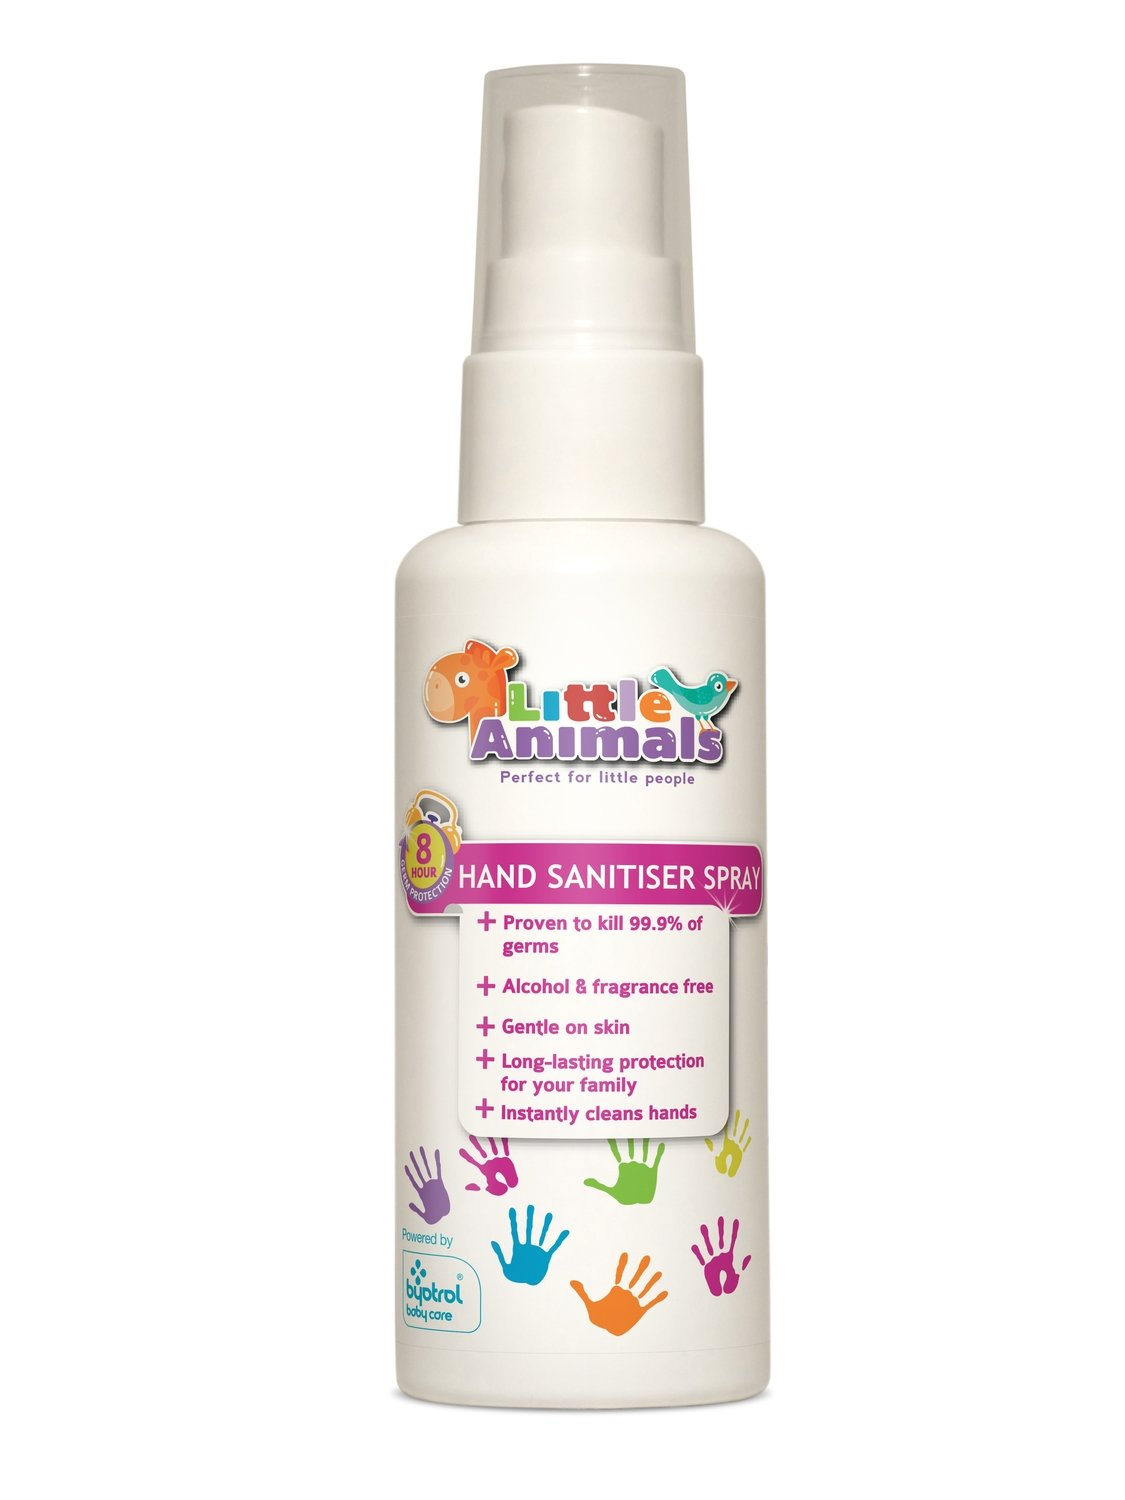 Little Animals Hand Sanitiser Spray 50ml